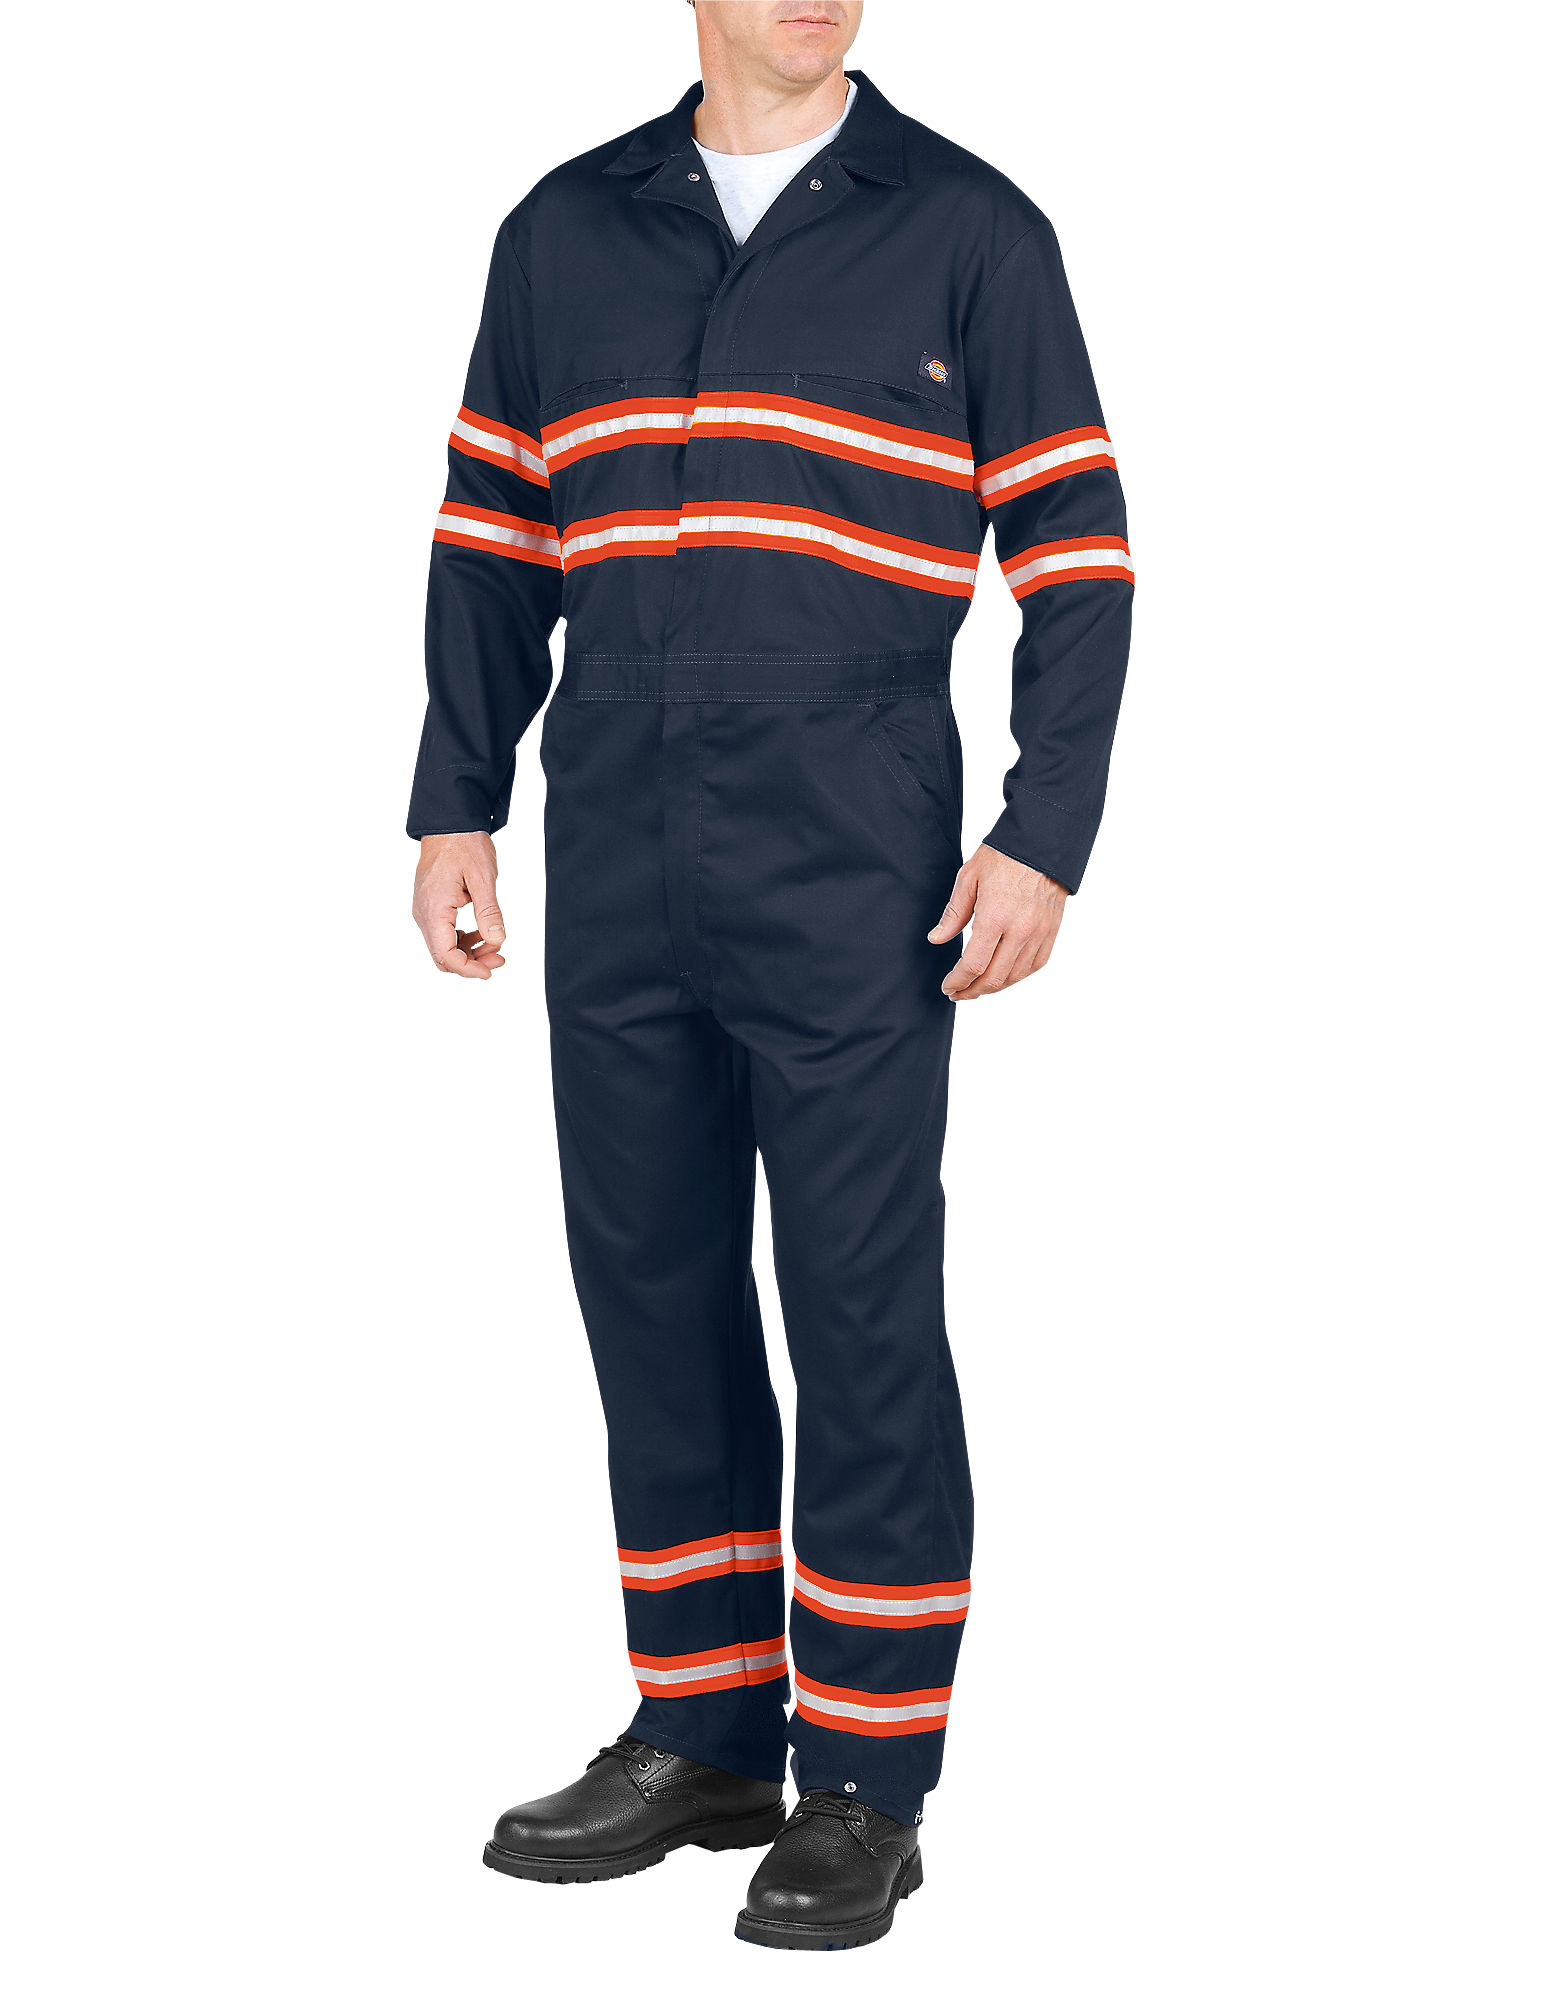 Dickies Mens Enhanced Visibility Long Sleeve Coverall, Dark Navy L TL by Coveralls